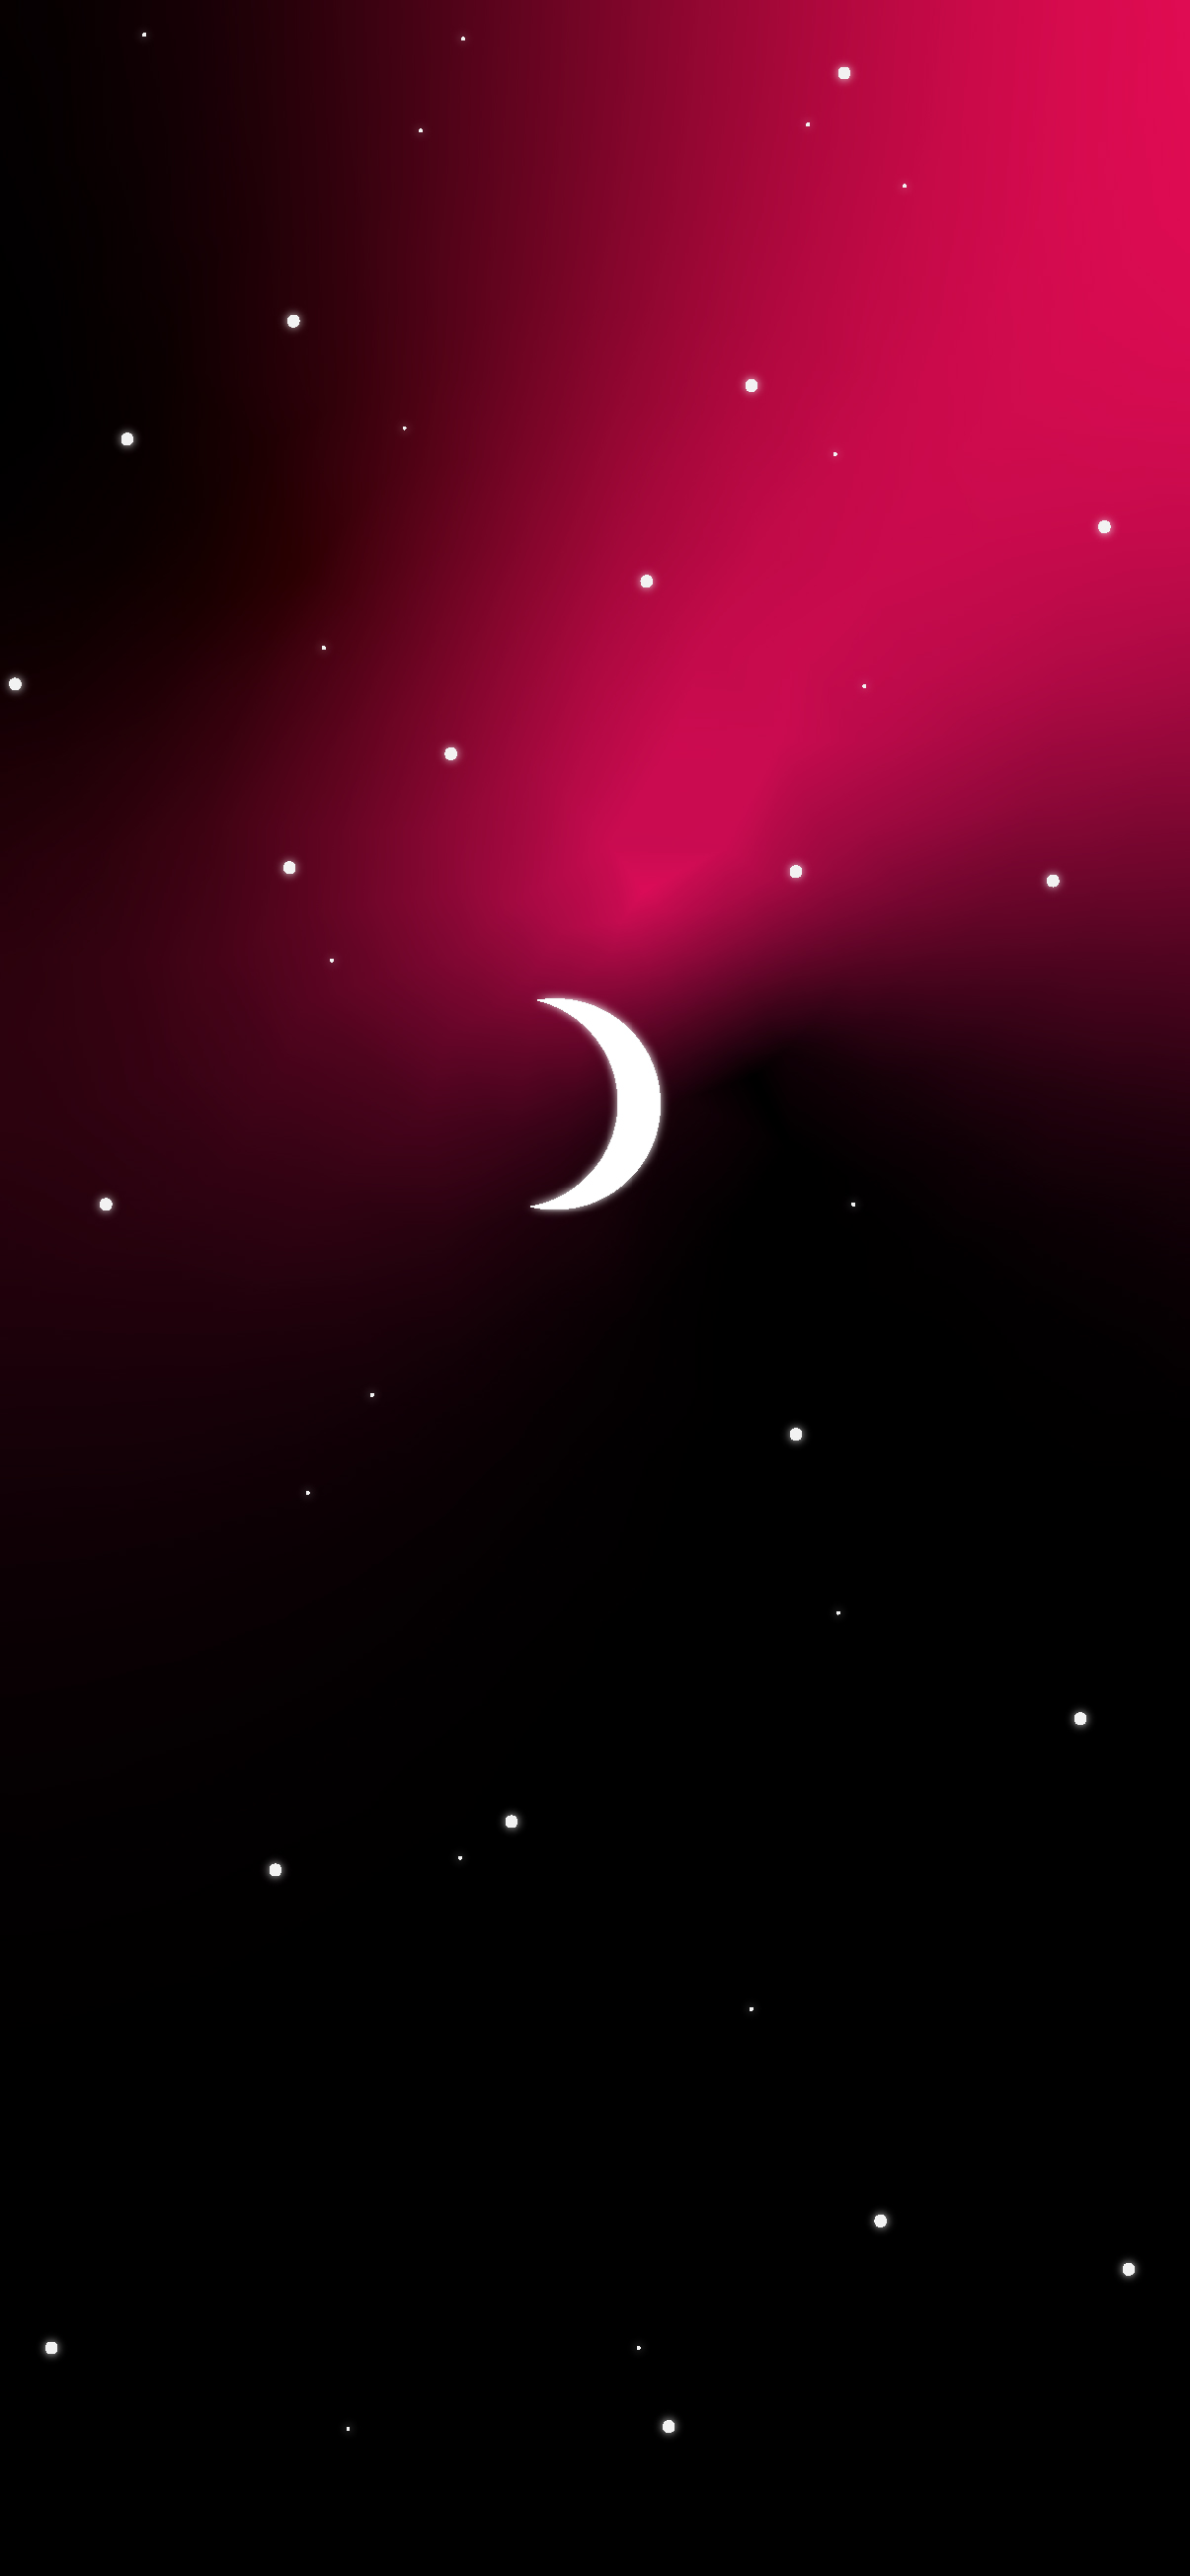 moon in clean galaxy space wallpaper background for phone